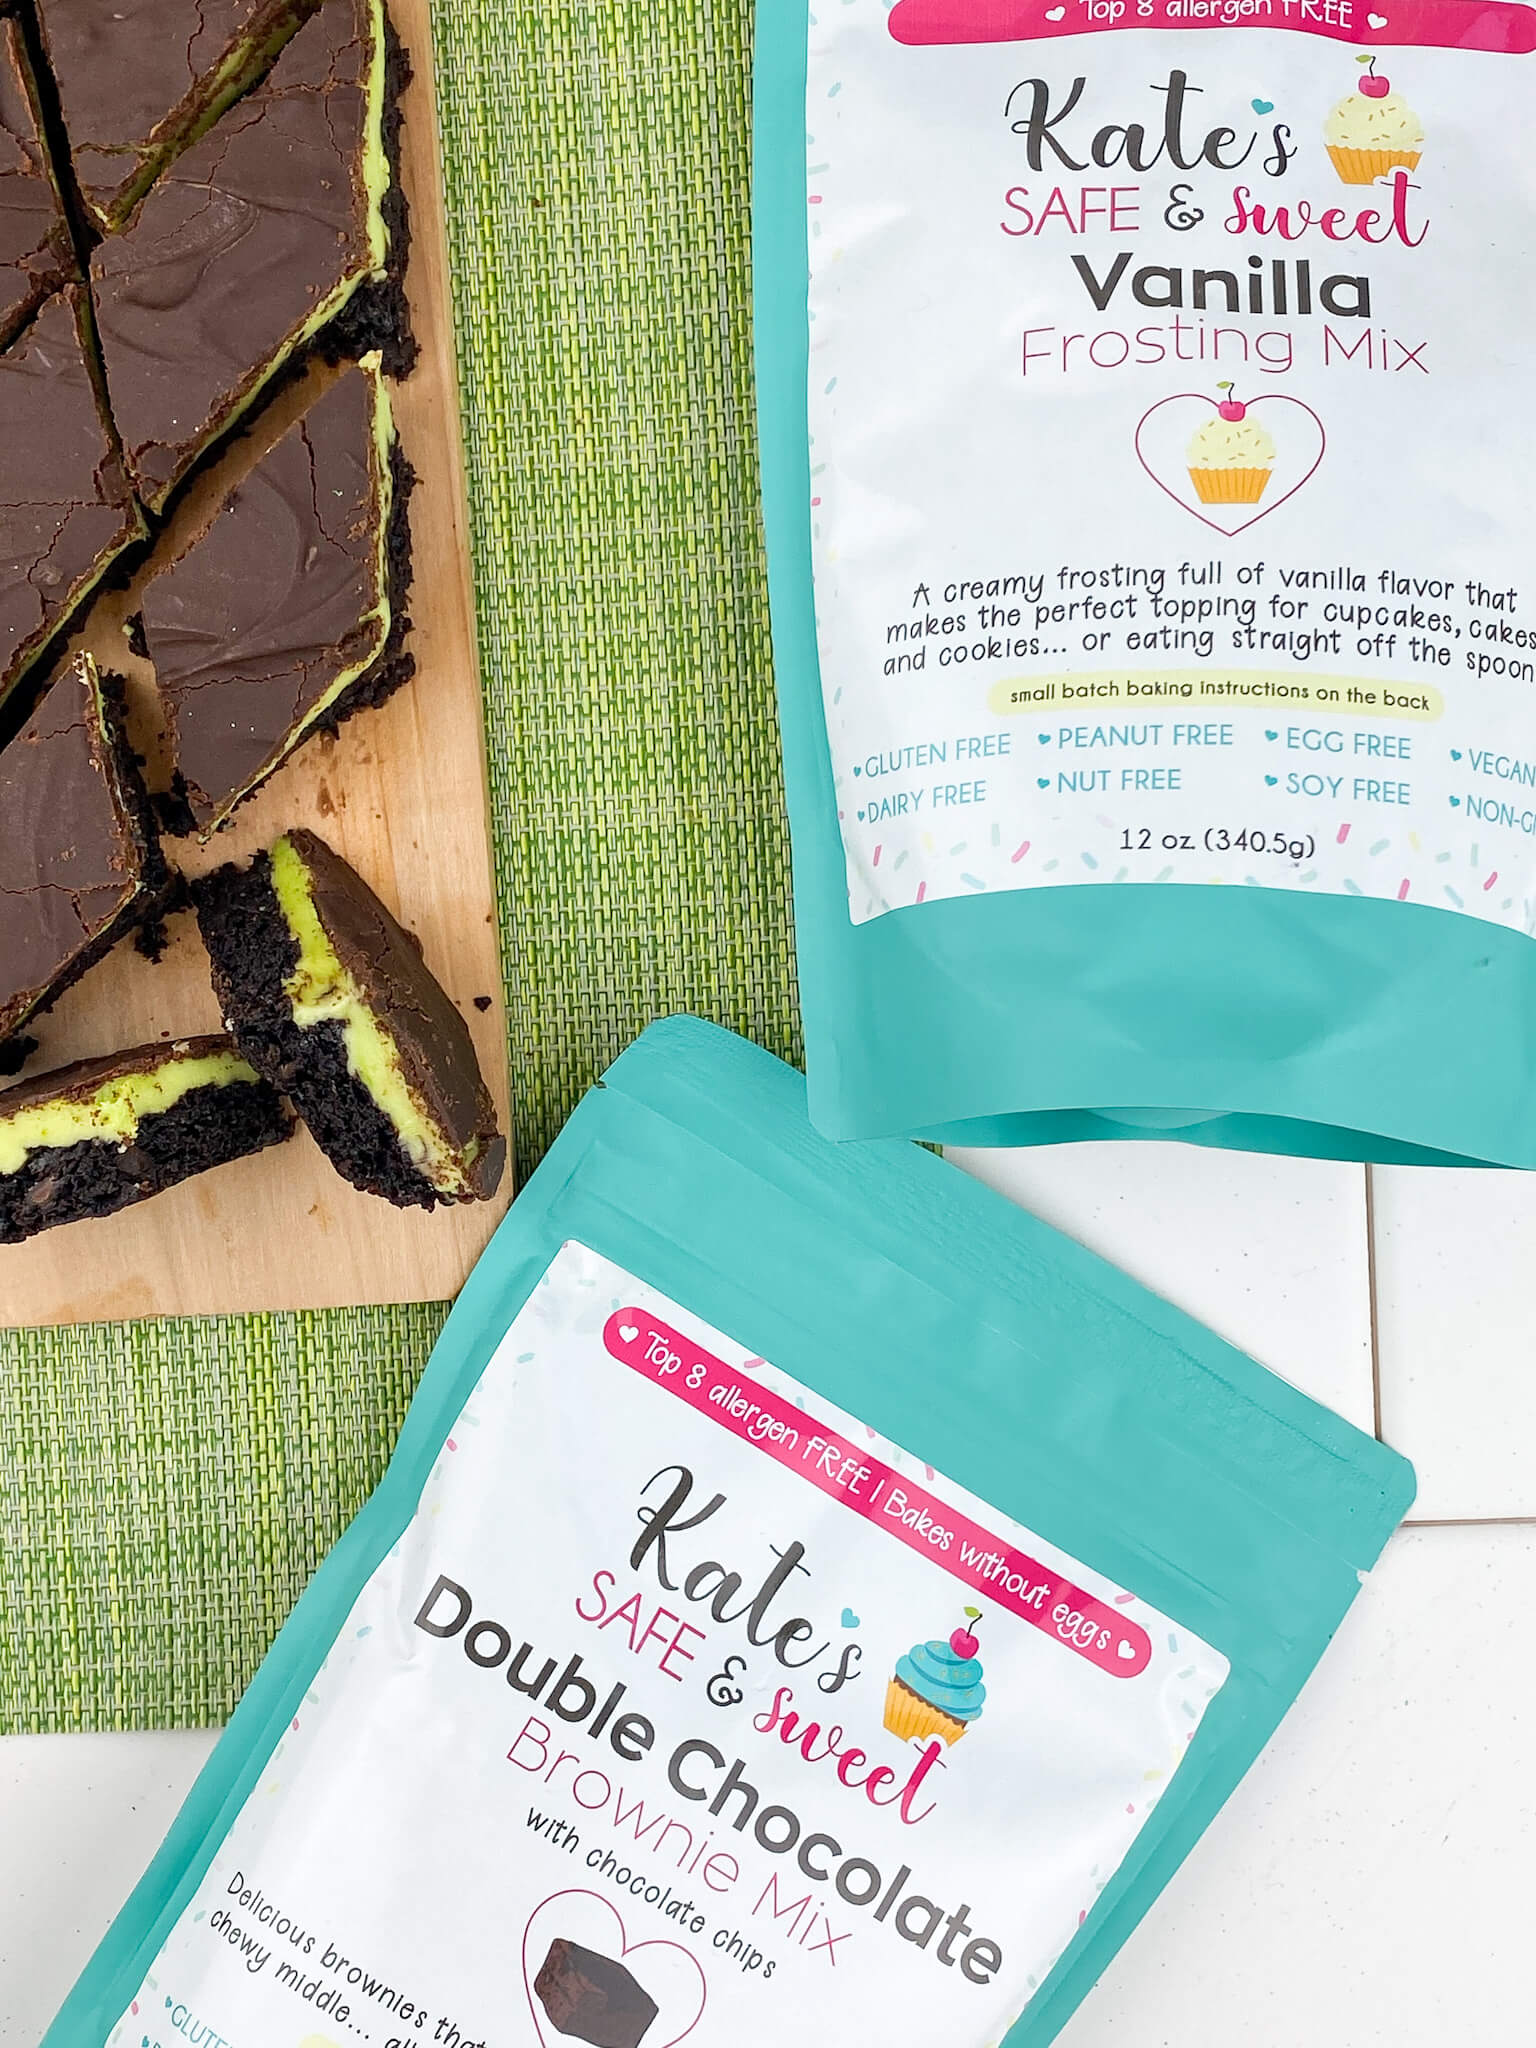 Kate's Safe & Sweet - Grasshopper Bars with Mixes